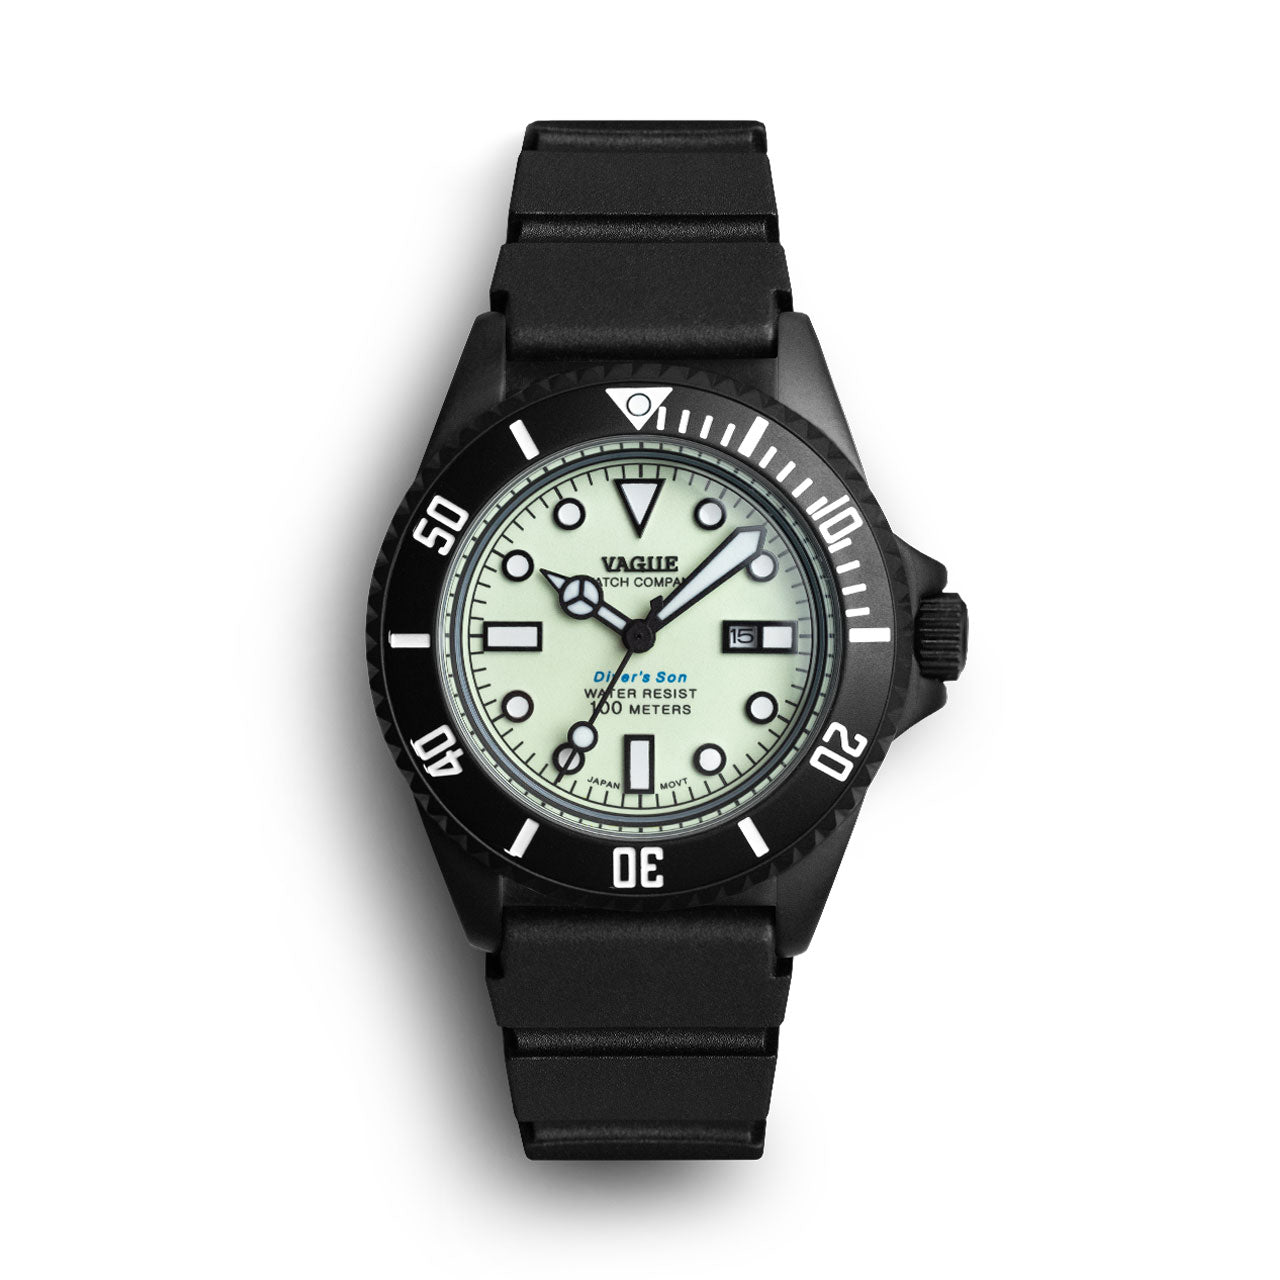 Vague Diver's Son Watch